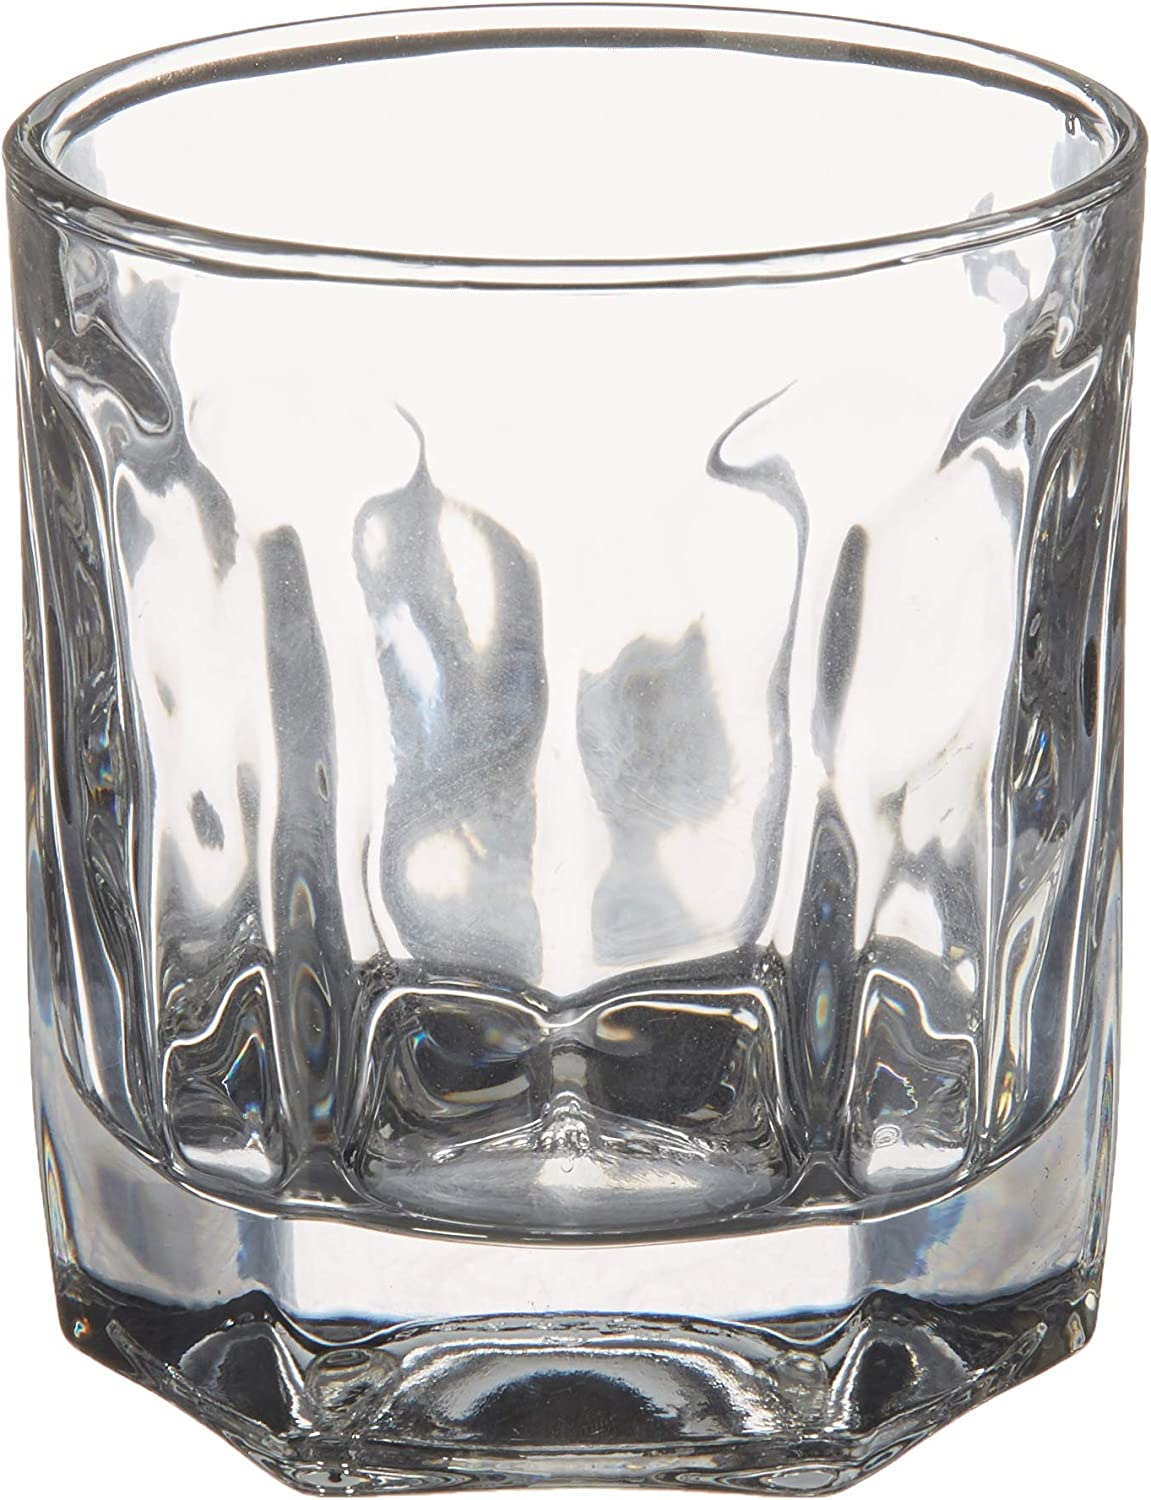 Sagaform Club Tumbler Cocktail Glass Set Of 2 4 3 4 Ounce Clear Amazon Ca Home Kitchen